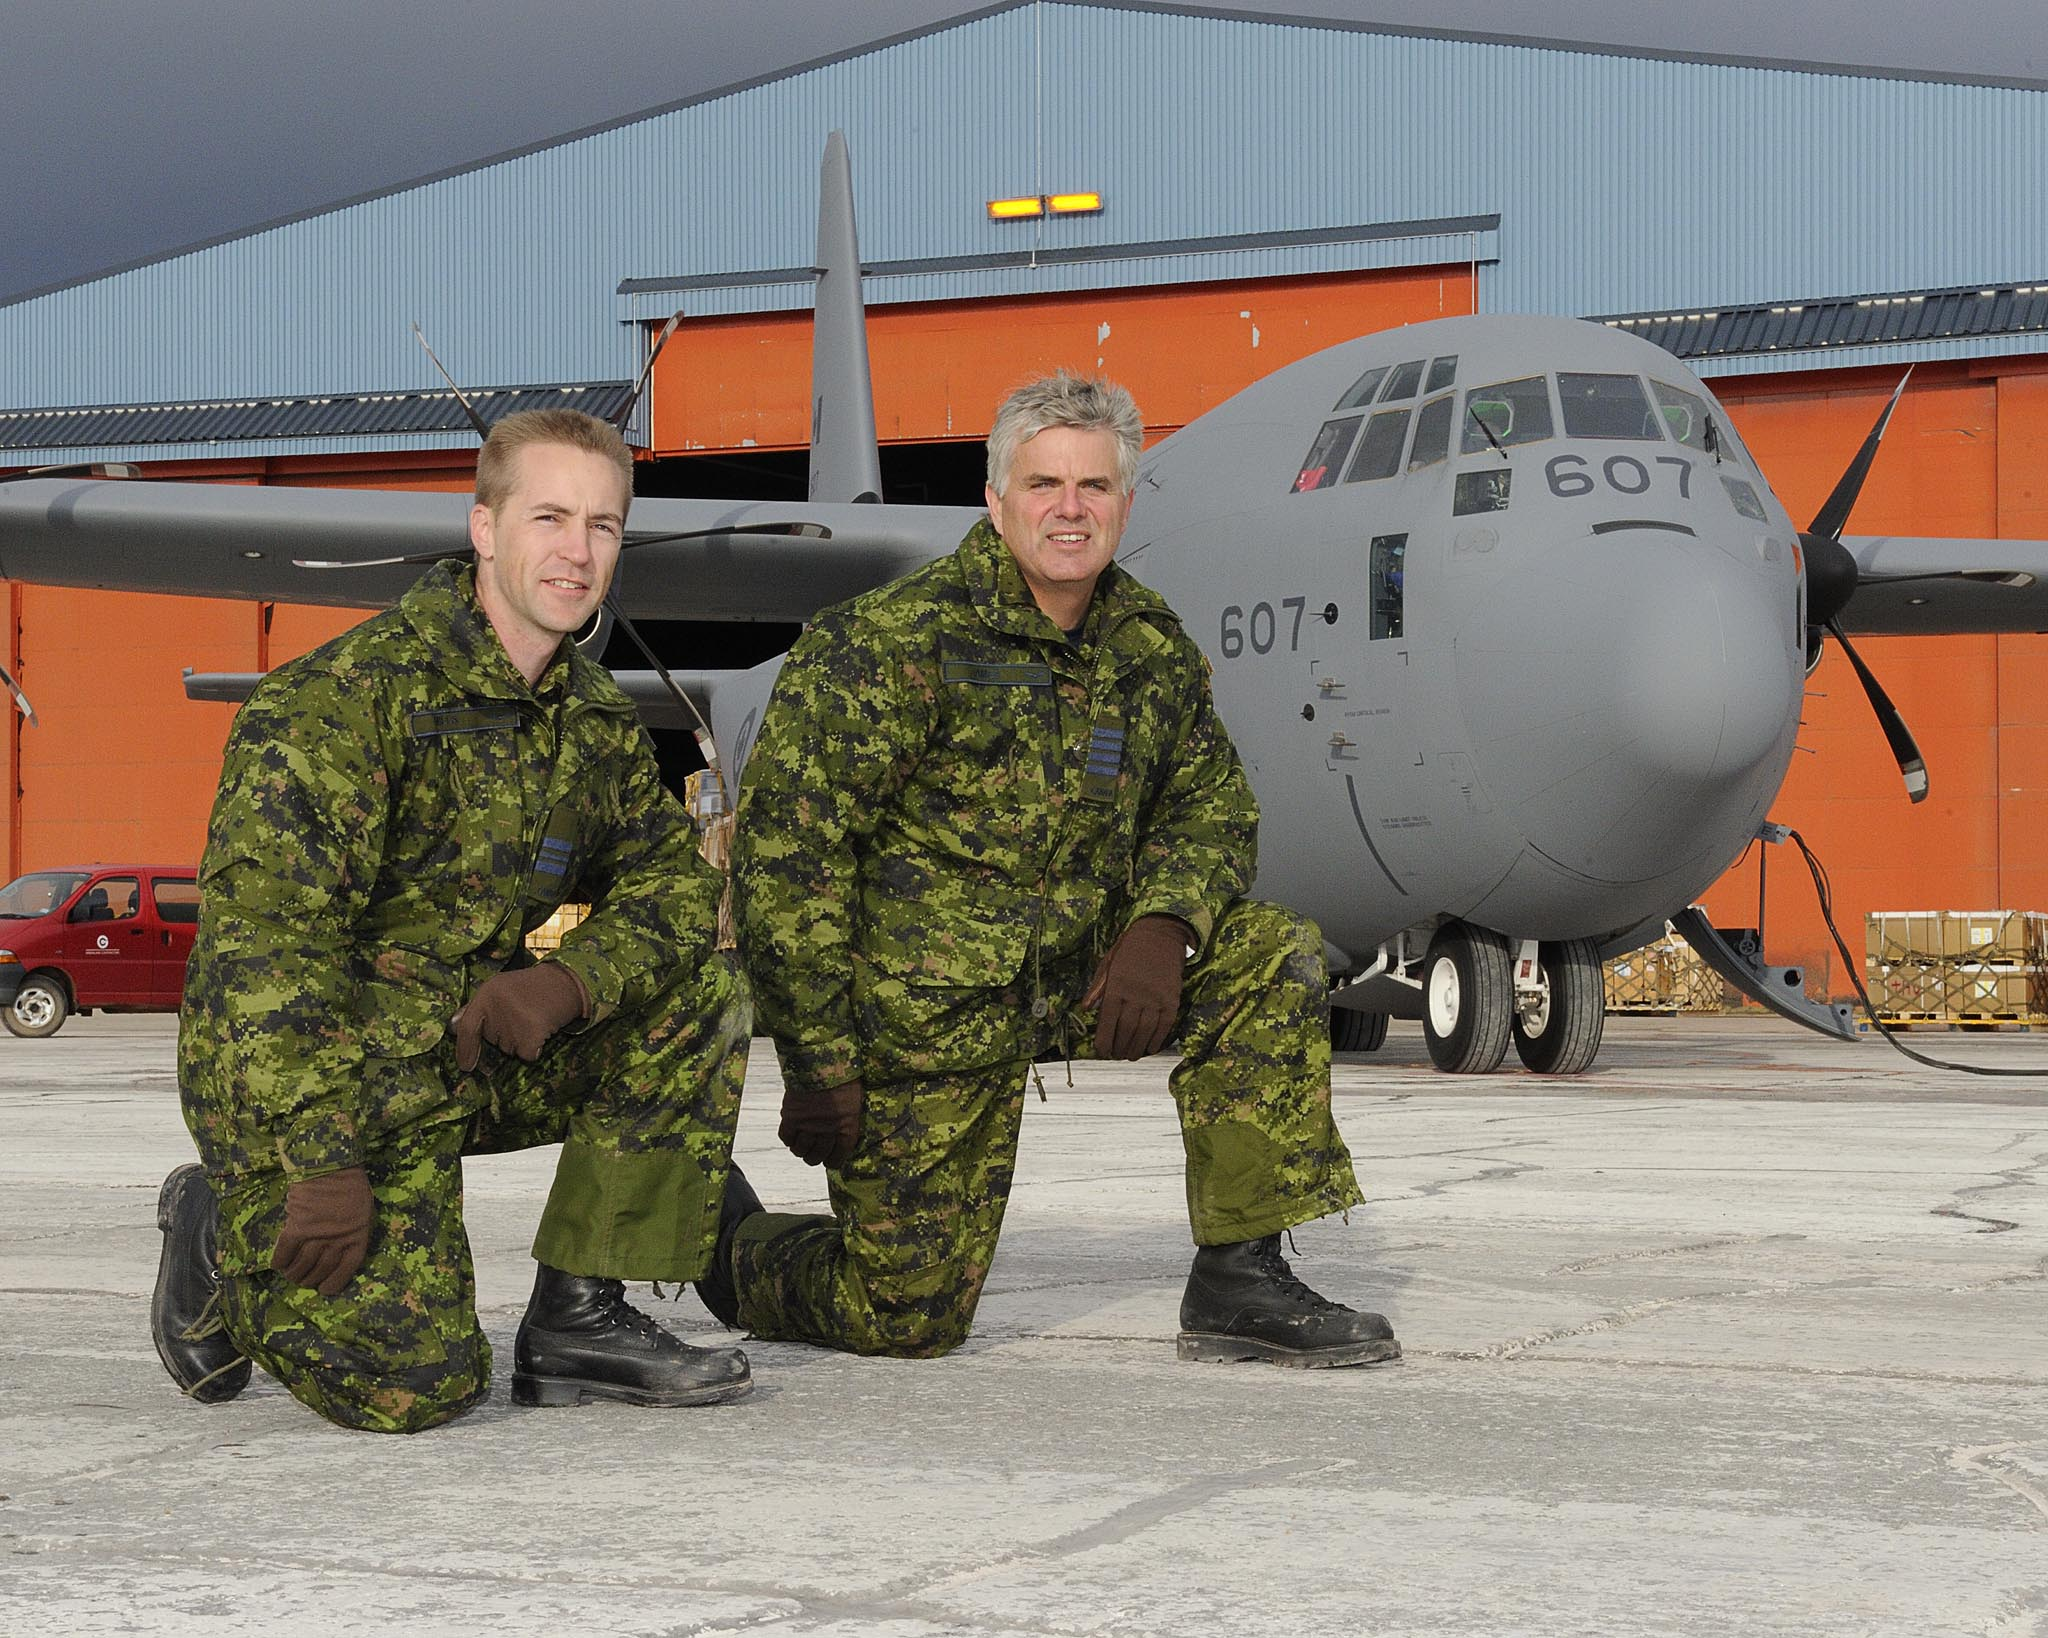 Major Ken Mills, the commanding officer of 2 Air Movements Squadron (left), located at 8 Wing Trenton, Ontario, and the squadron's honorary colonel, Eben James, pose in front of a CC-130J Hercules aircraft in Thule, Greenland, in September 2011 during Operation Boxtop (the semi-annual resupply of Canadian Forces Station Alert in Nunavut). As part of their relationship with their units, honoraries often participate in missions and activities.  PHOTO: Master Corporal Colin Aiken